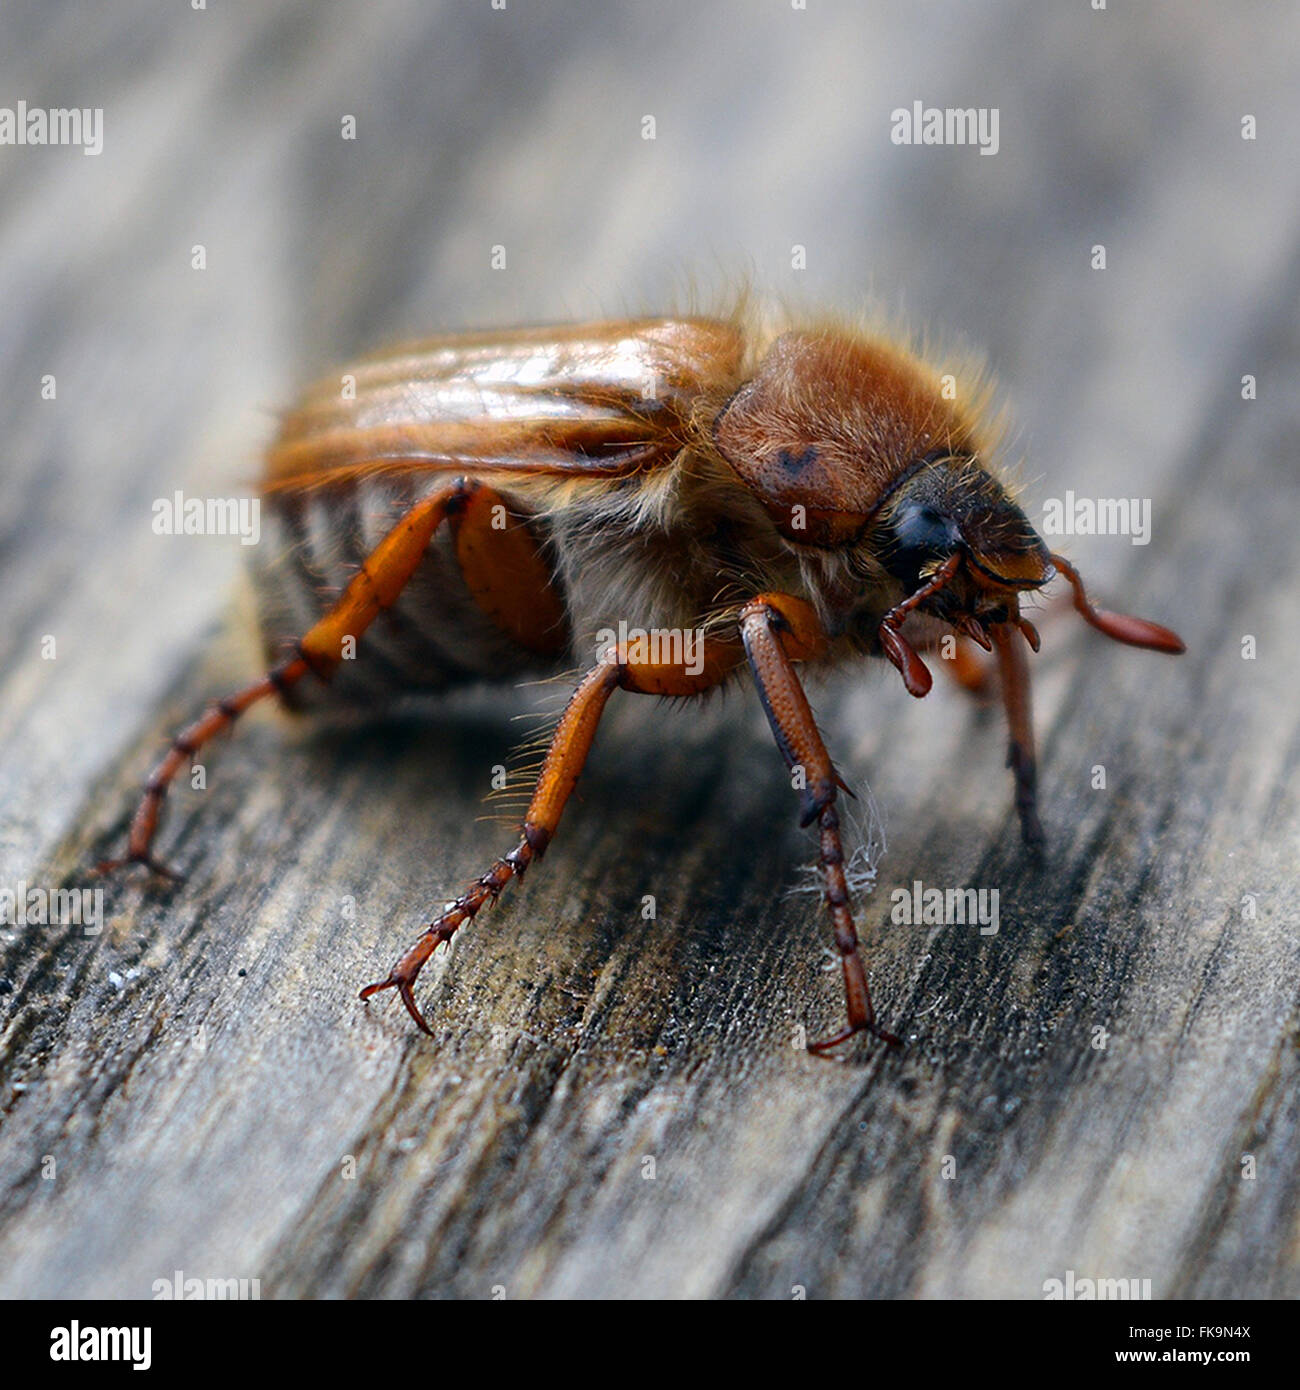 Macro shot of a Maybug on wood. - Stock Image